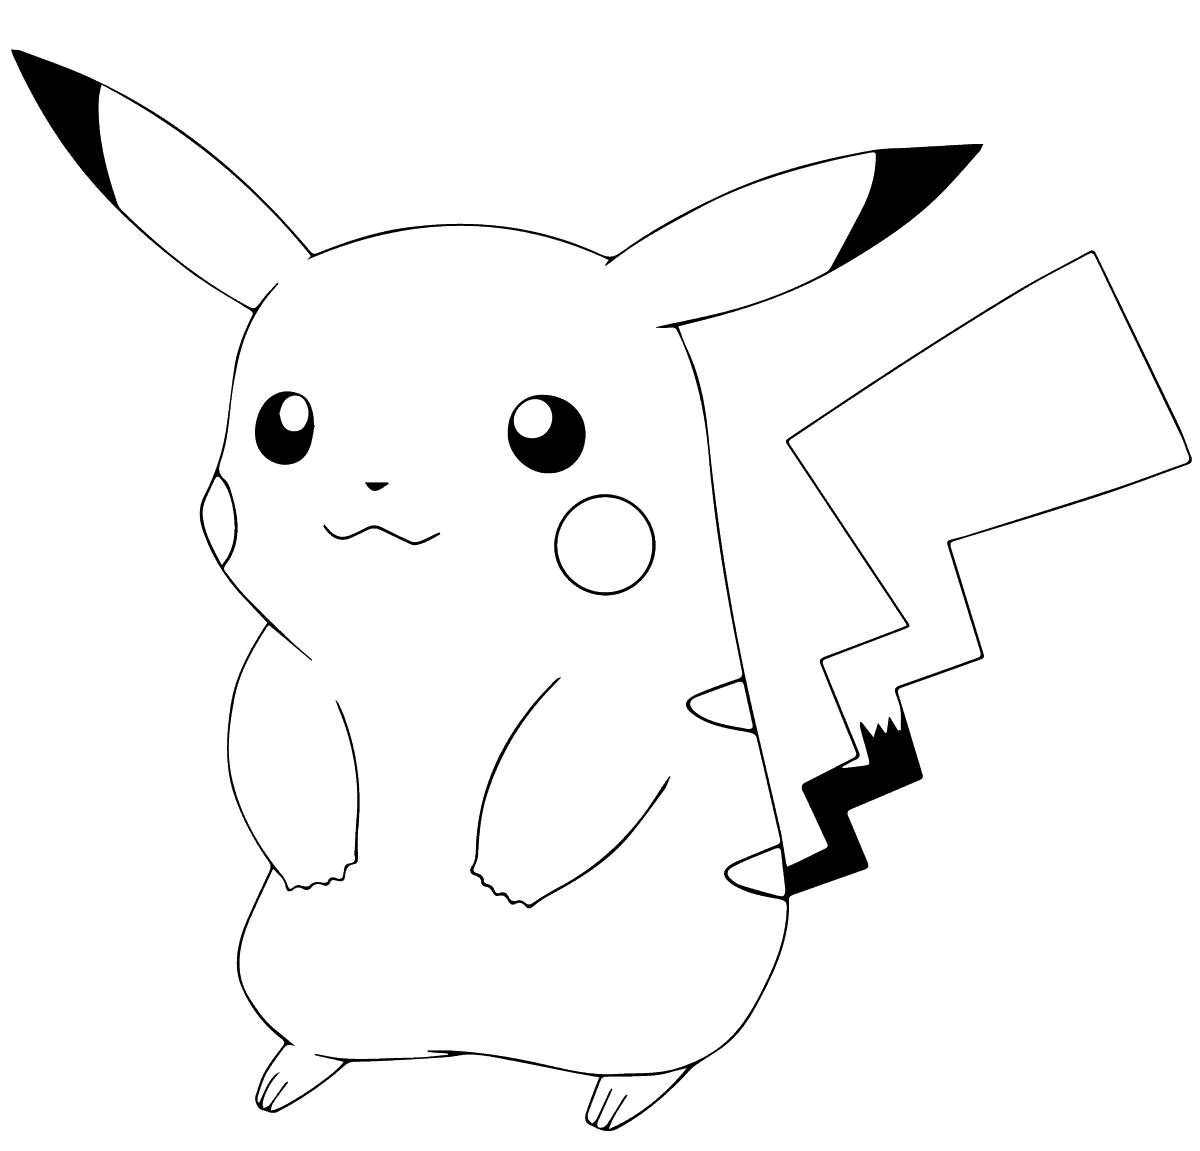 pikachu coloring pages pikachu and pichu coloring pages at getcoloringscom pikachu coloring pages